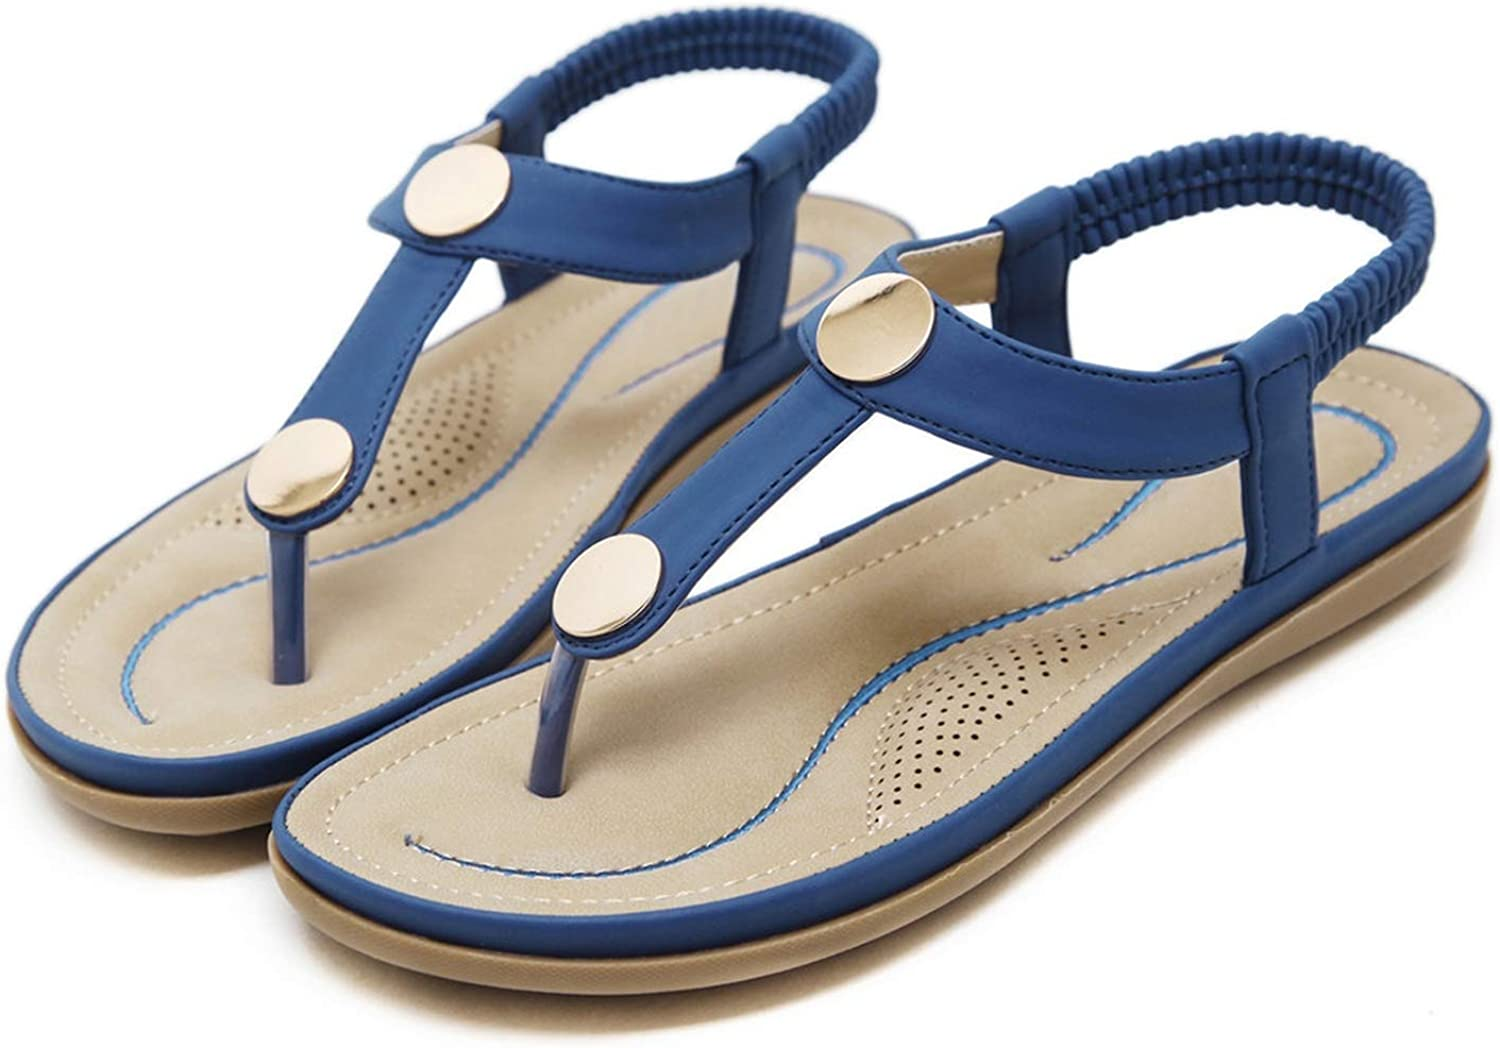 Heart to Hear Summer shoes Woman Casual Comfortable Sandals Women Flat shoes,